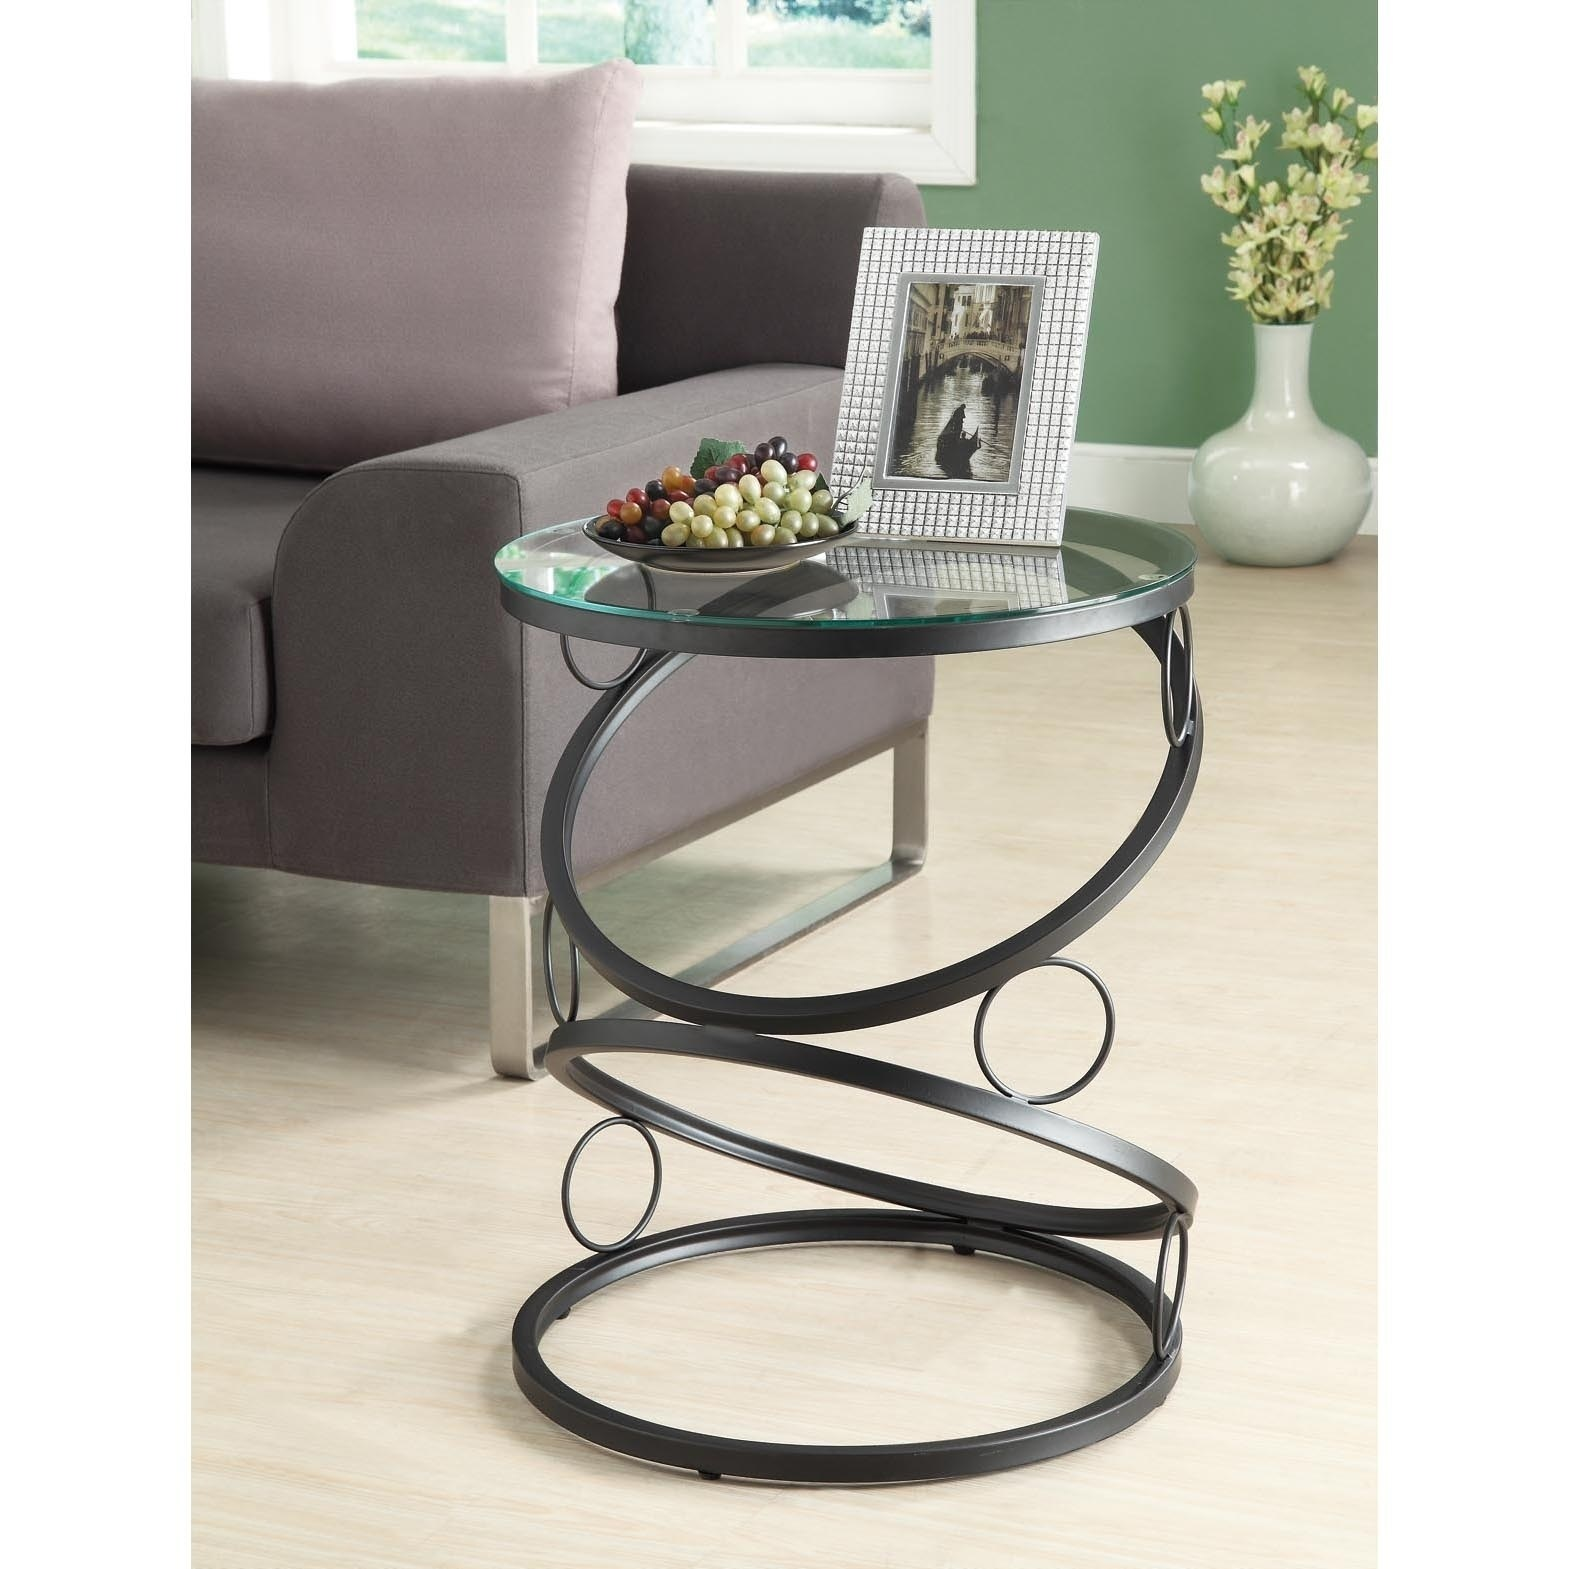 matte black metal accent table with tempered glass free shipping today outdoor umbrella stand weights frog drum hobby lobby coffee pottery barn griffin round pedestal wood dining